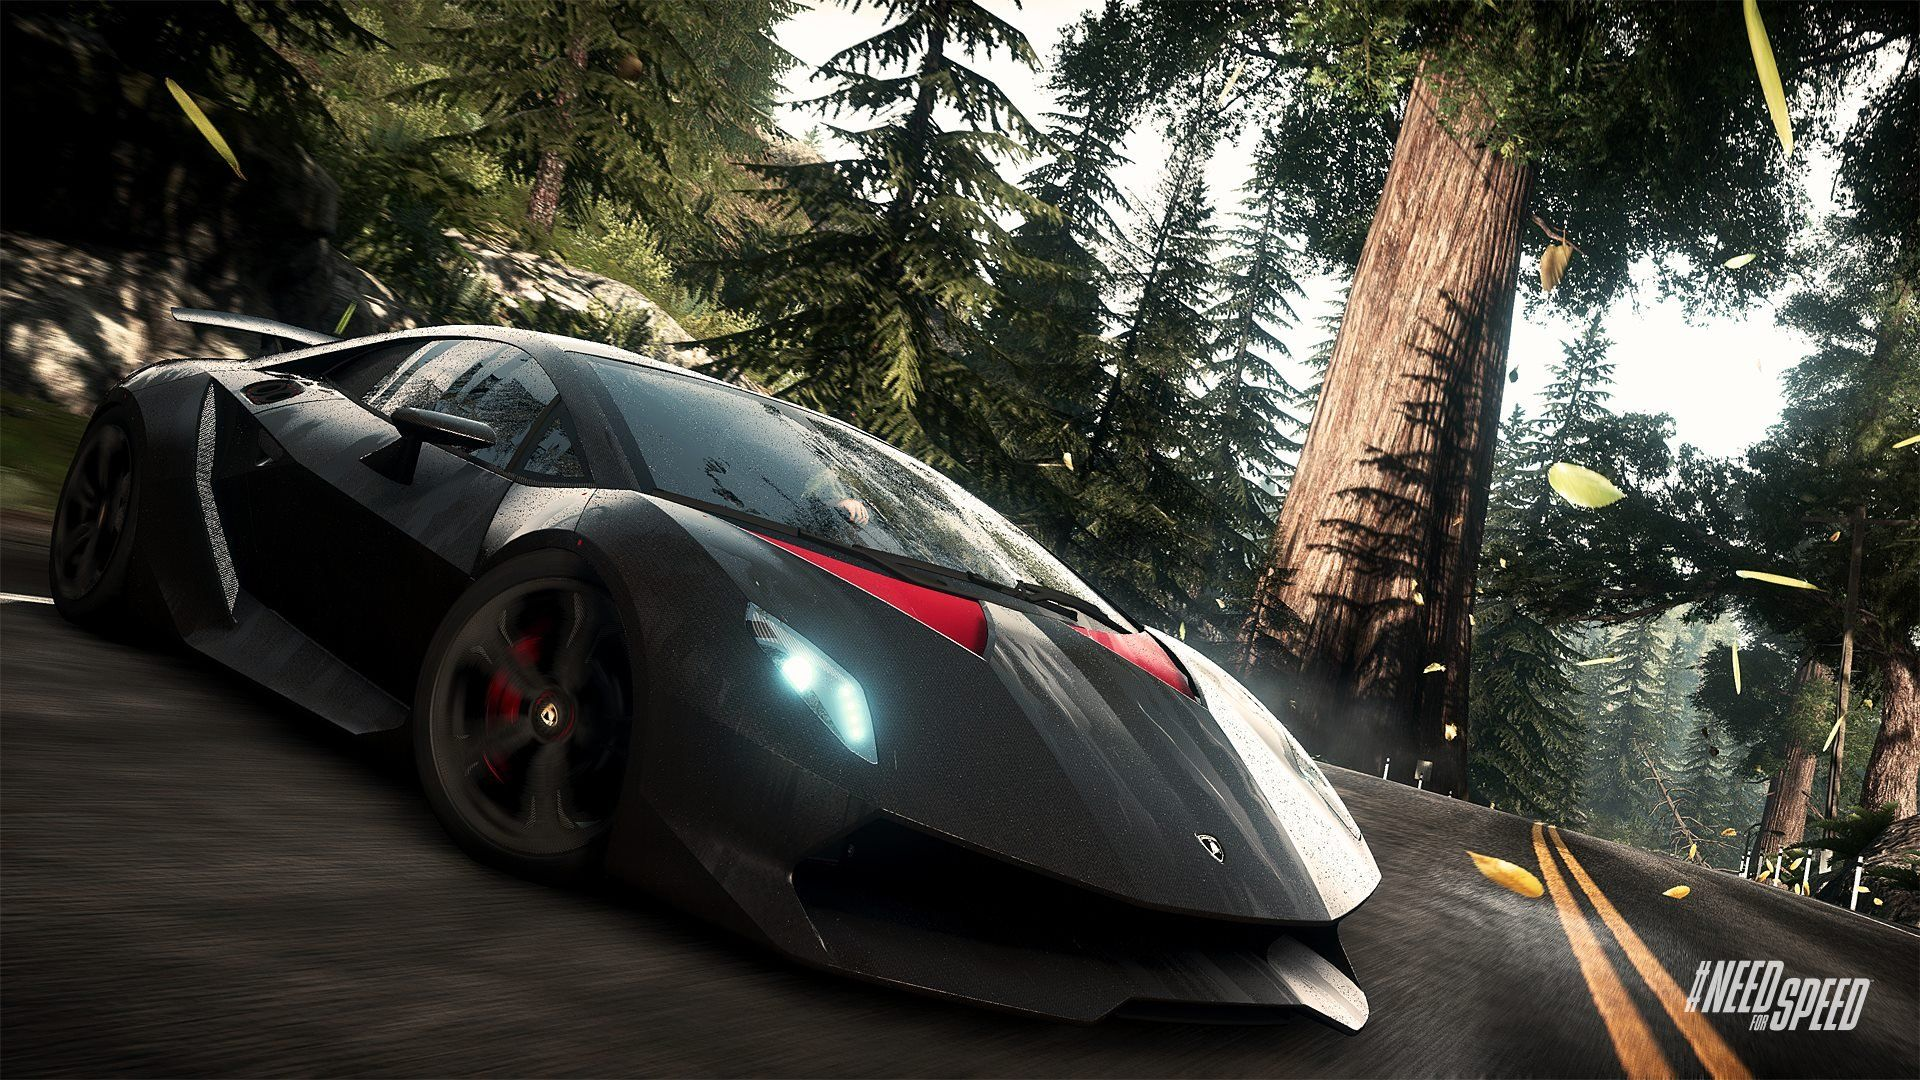 K Ultra Hd Need For Speed Wallpapers Hd Desktop Backgrounds 1920 1200 Need For Speed Wallpaper Need For Speed Rivals Need For Speed Lamborghini Sesto Elemento